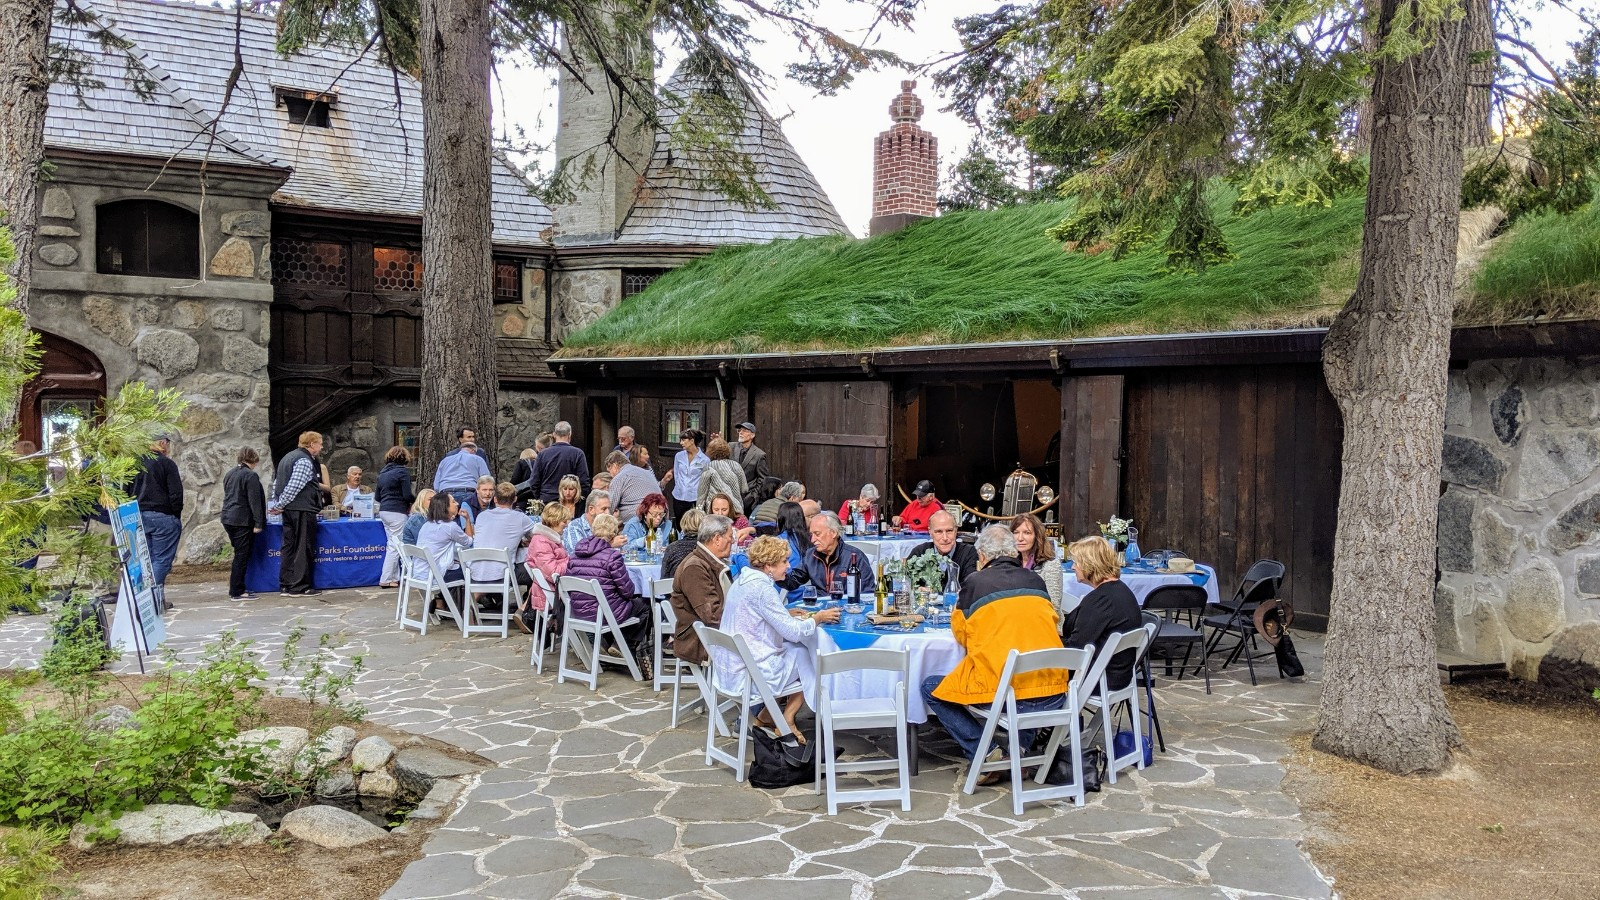 Trivia Night at Vikingsholm Castle with Todd Borg - HAERR TRIPPIN'